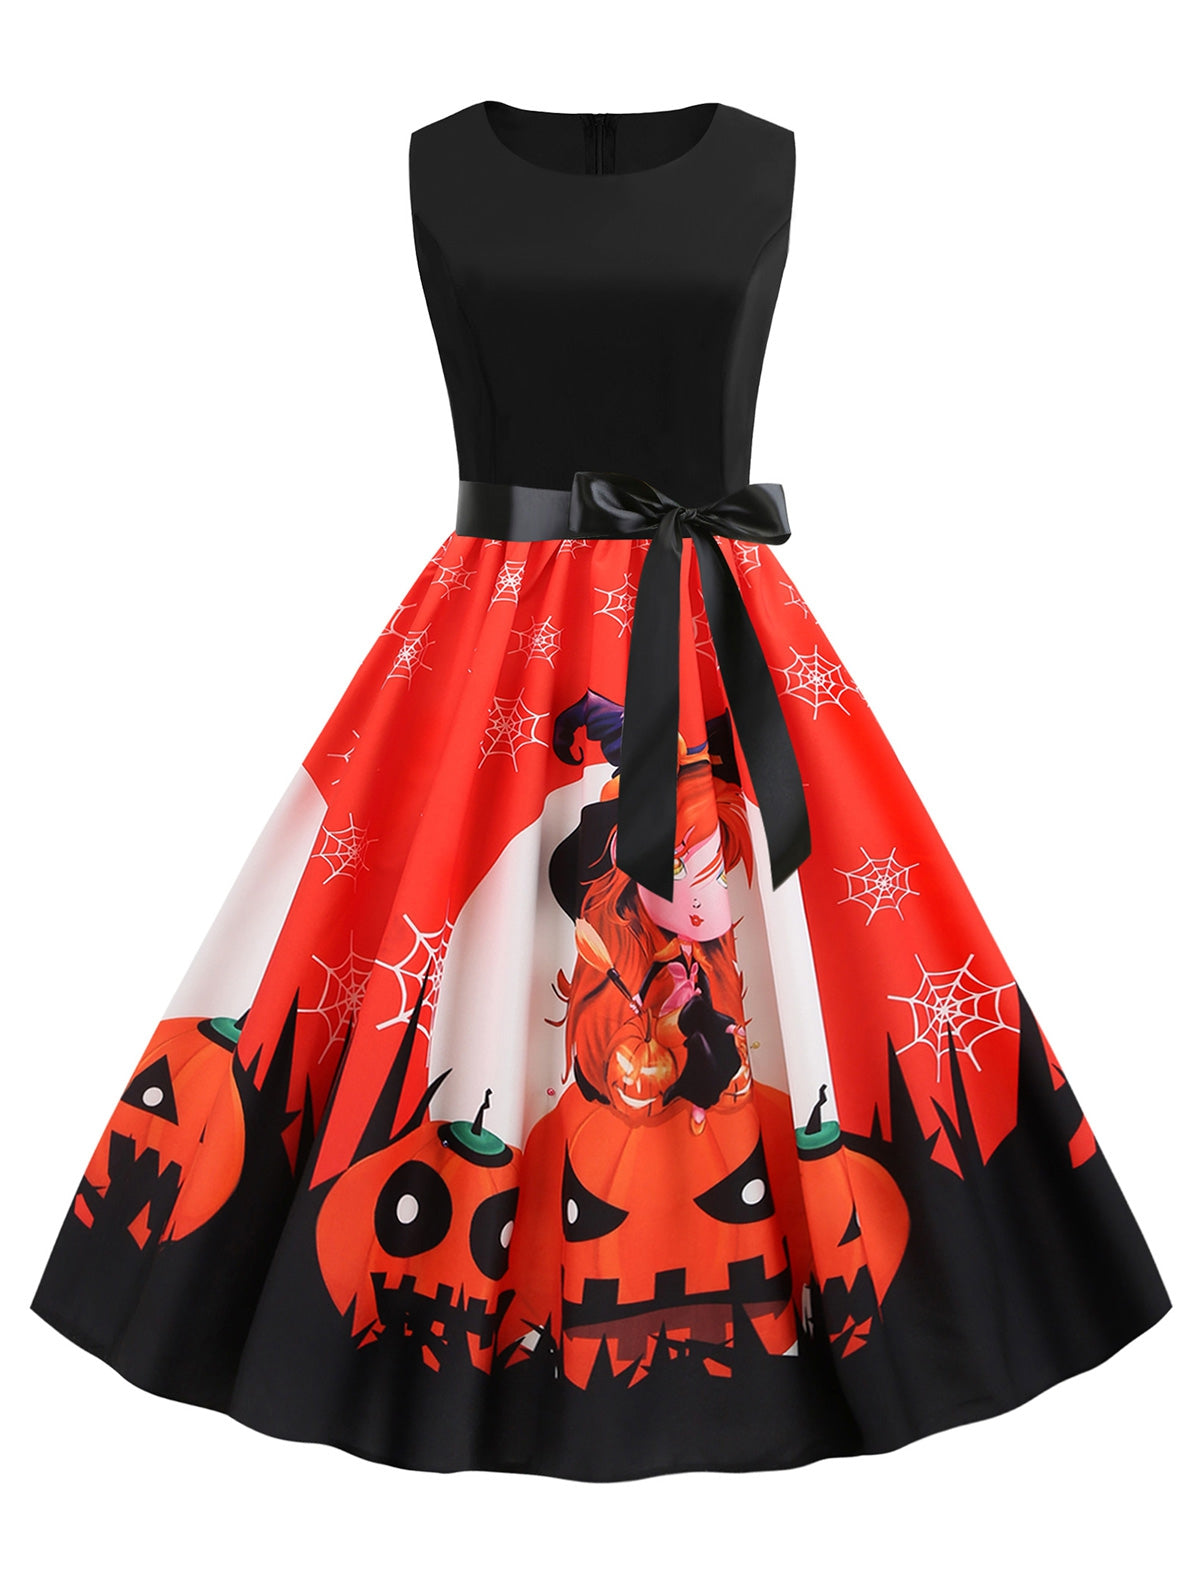 Retro 50s Halloween Sleeveless Party Swing Dress